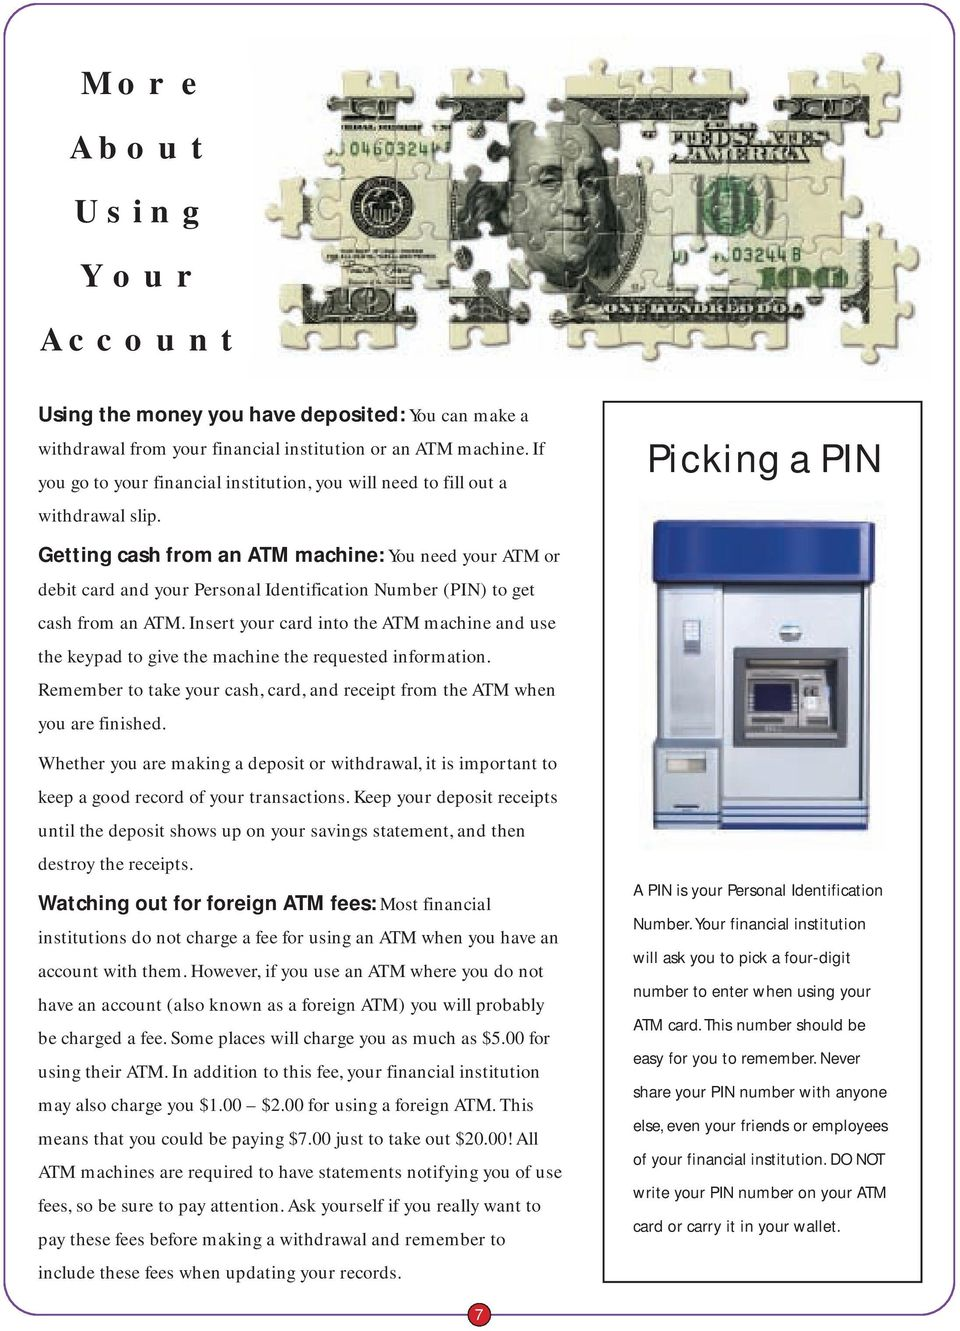 Picking a PIN Getting cash from an ATM machine: You need your ATM or debit card and your Personal Identification Number (PIN) to get cash from an ATM.